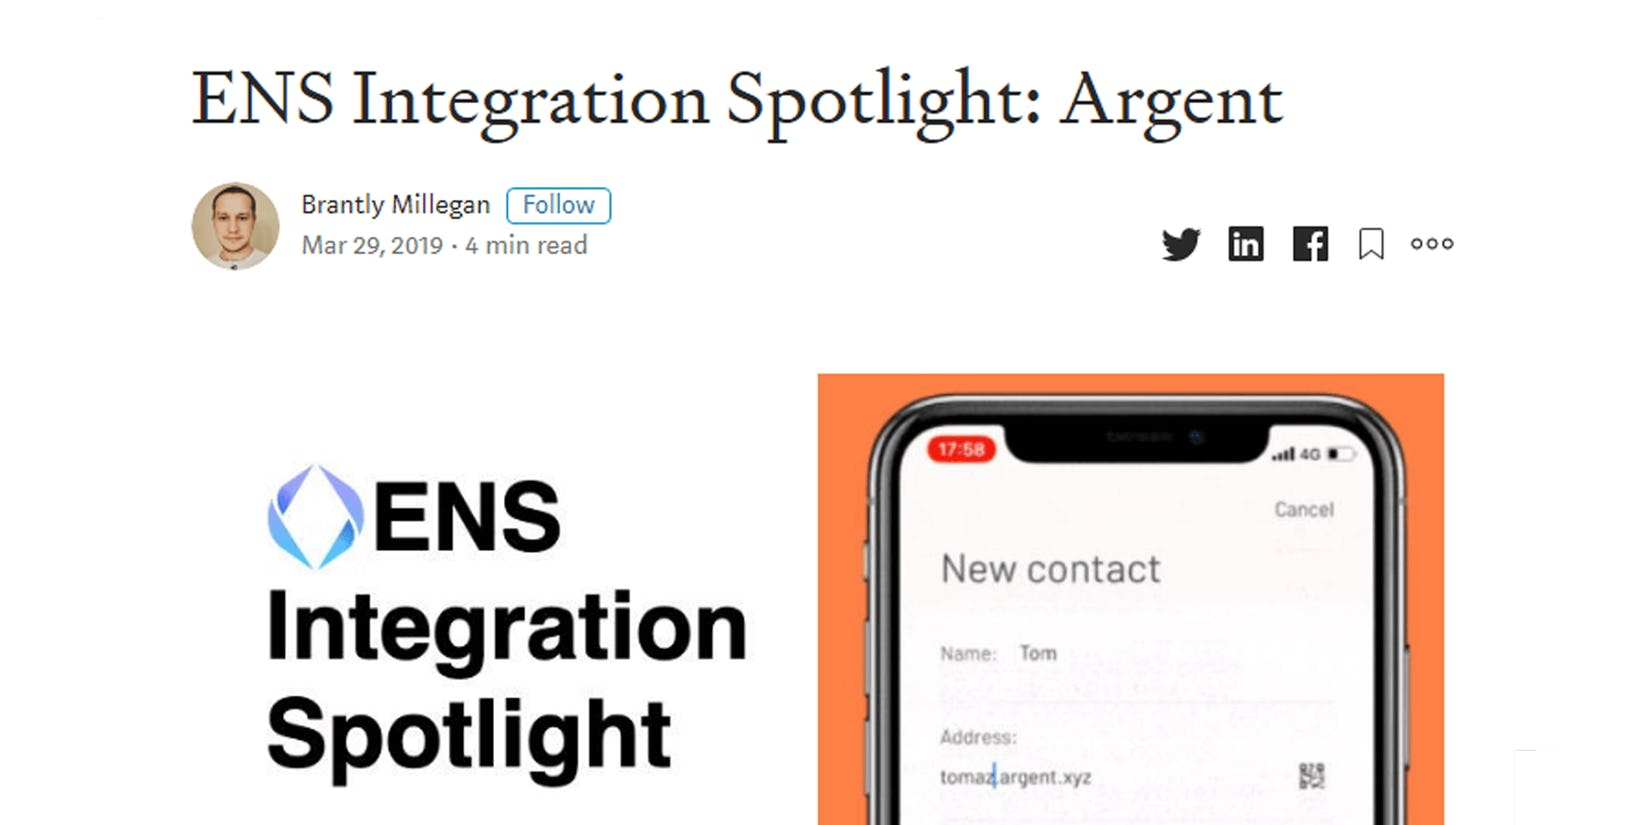 ENS Integration Spotlight: Argent by Brantly Millegan